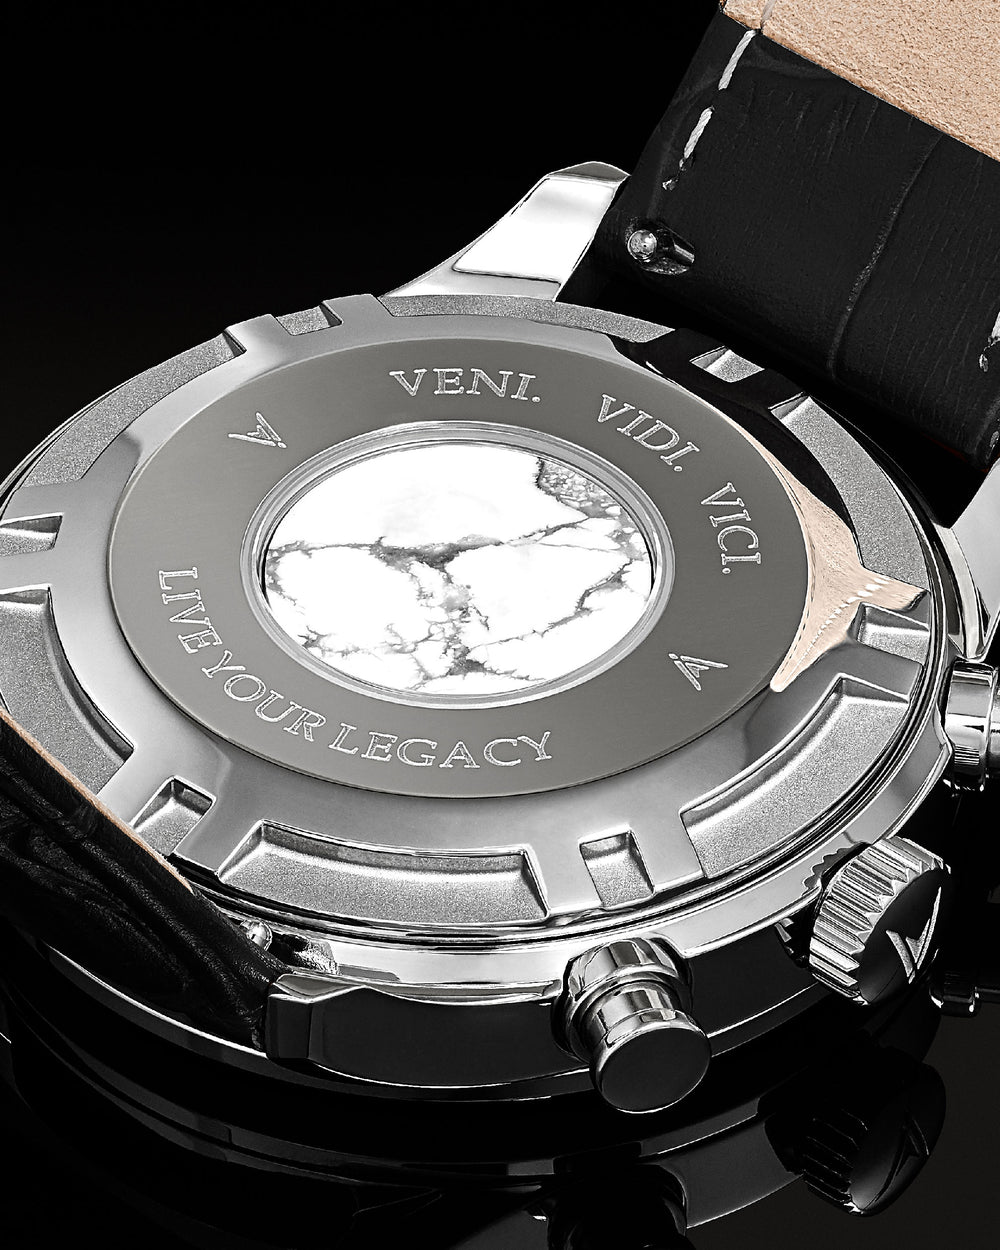 Vincero Chrono S Luxury Watch 316L Stainless Steel Caseback with Veni Vidi Vici Live Your Legacy Engraving